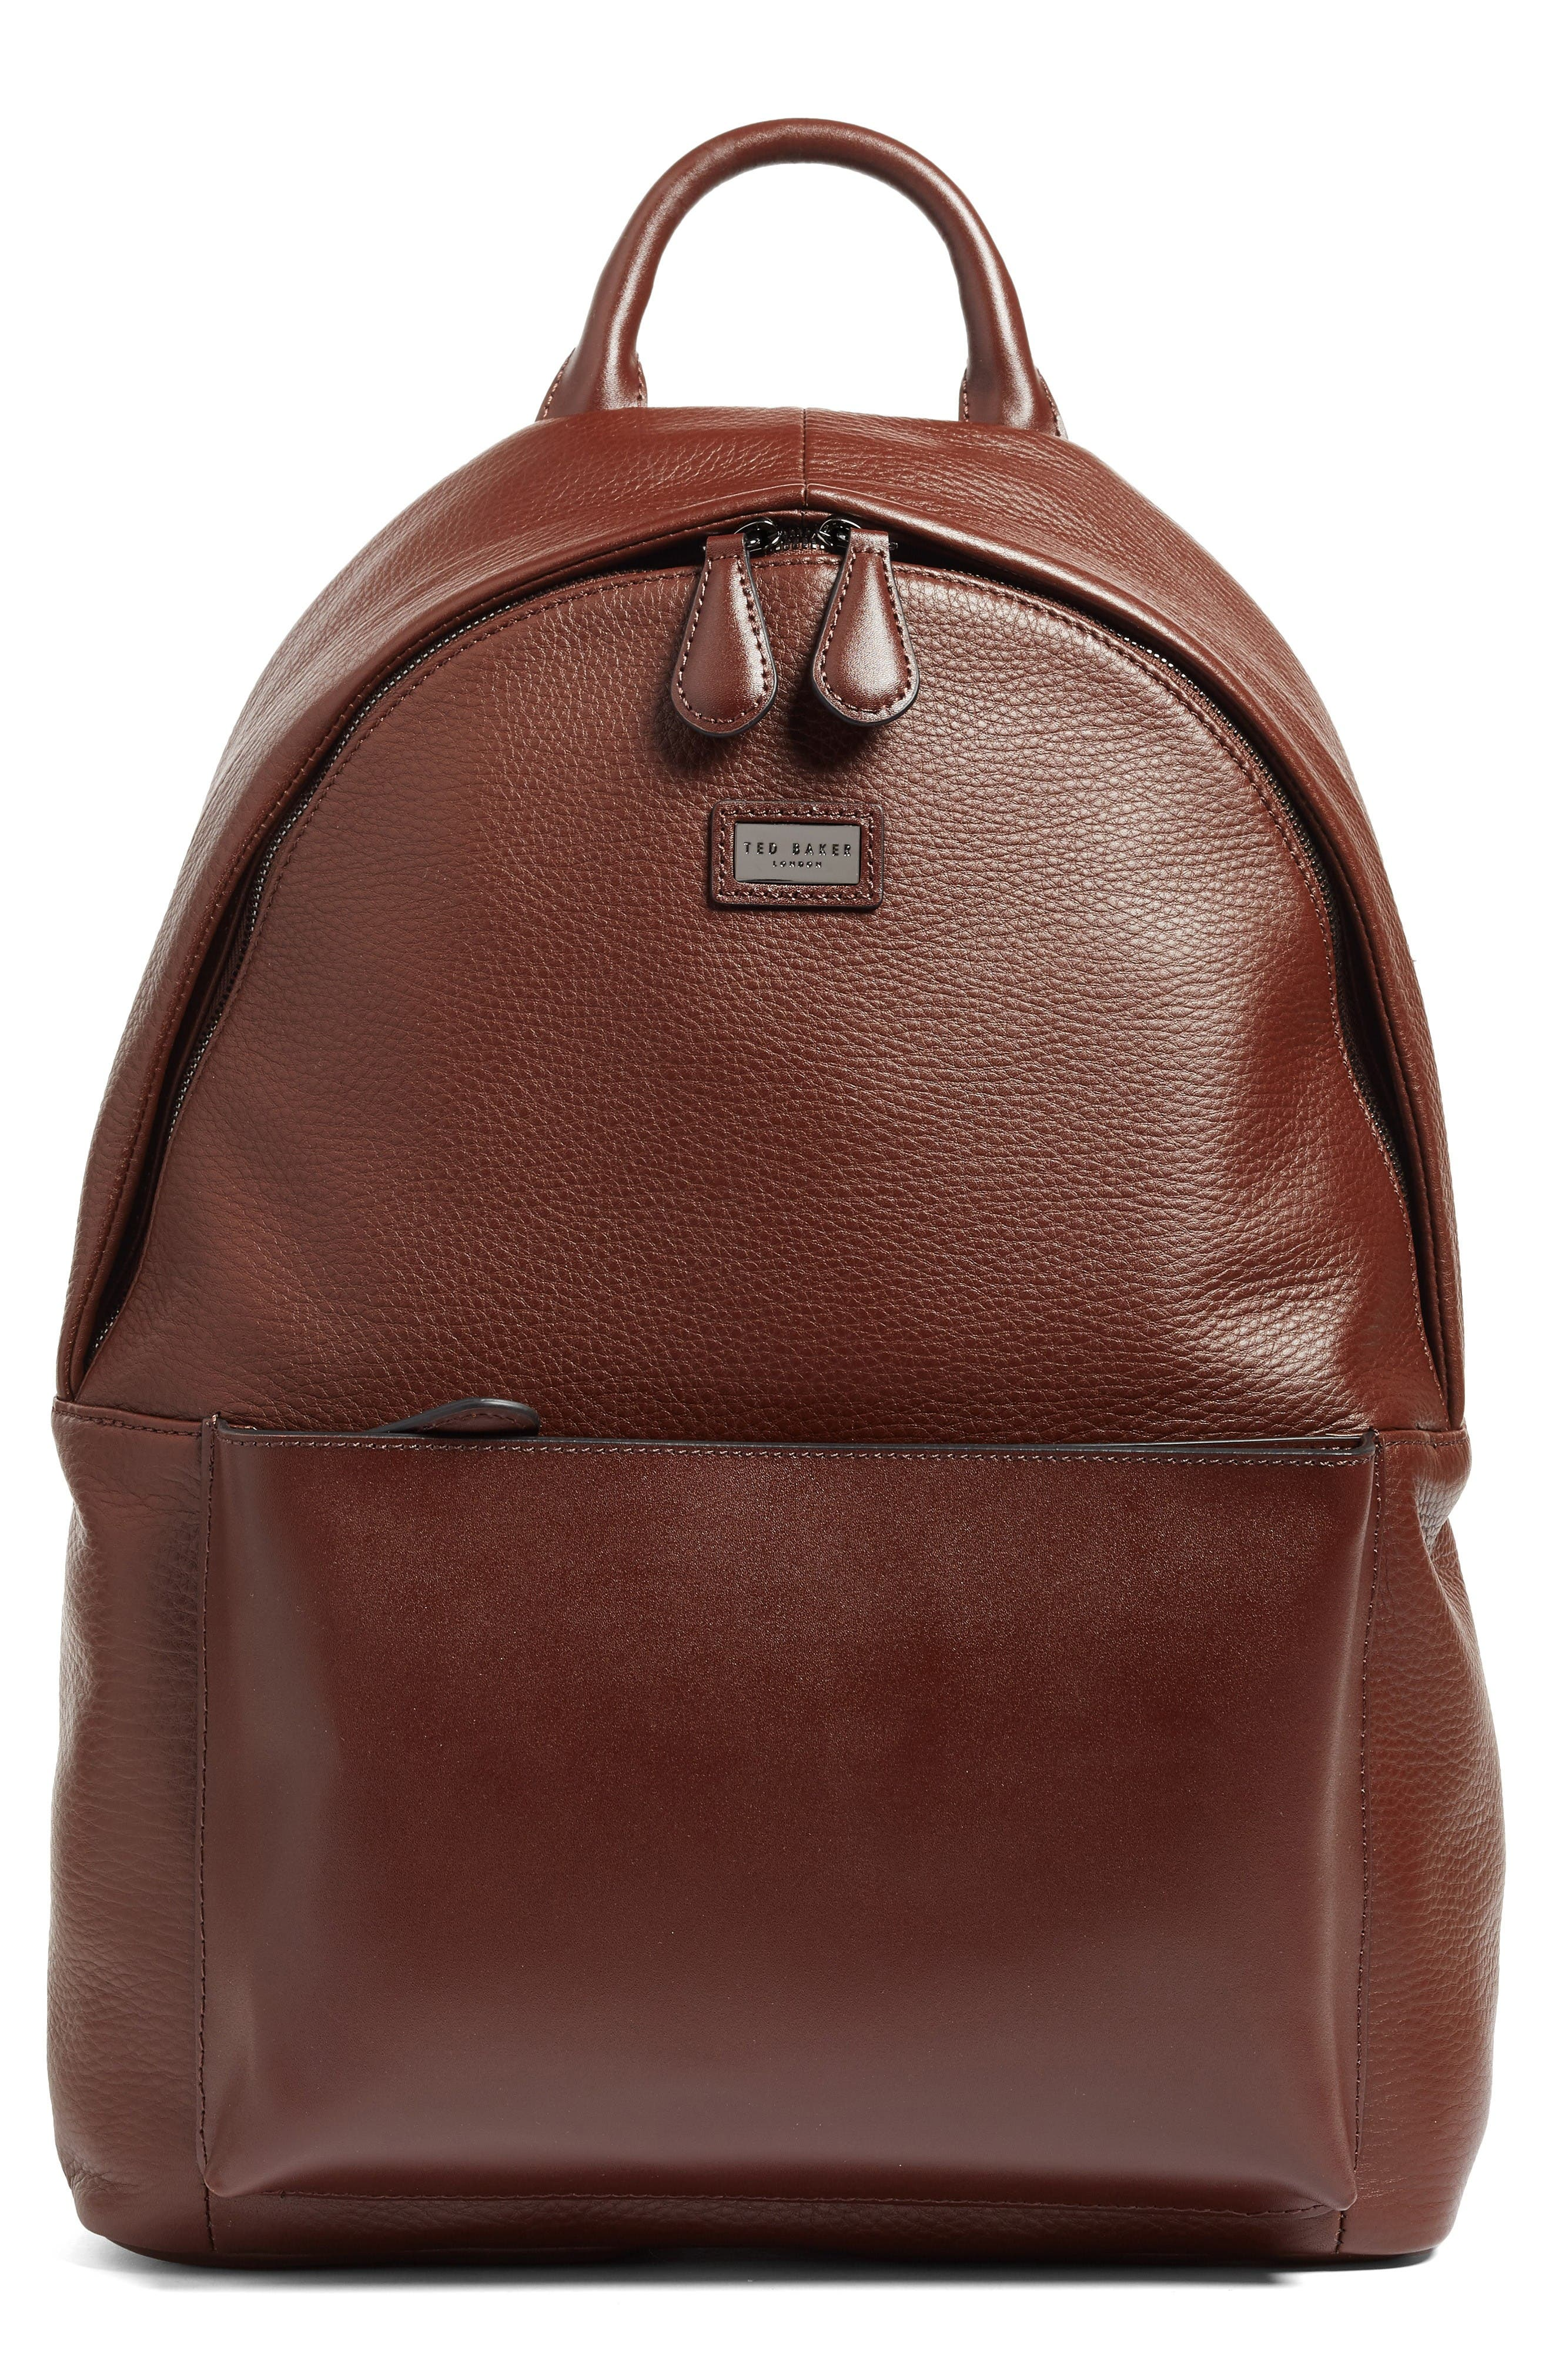 Leather Backpack,                             Main thumbnail 1, color,                             Tan